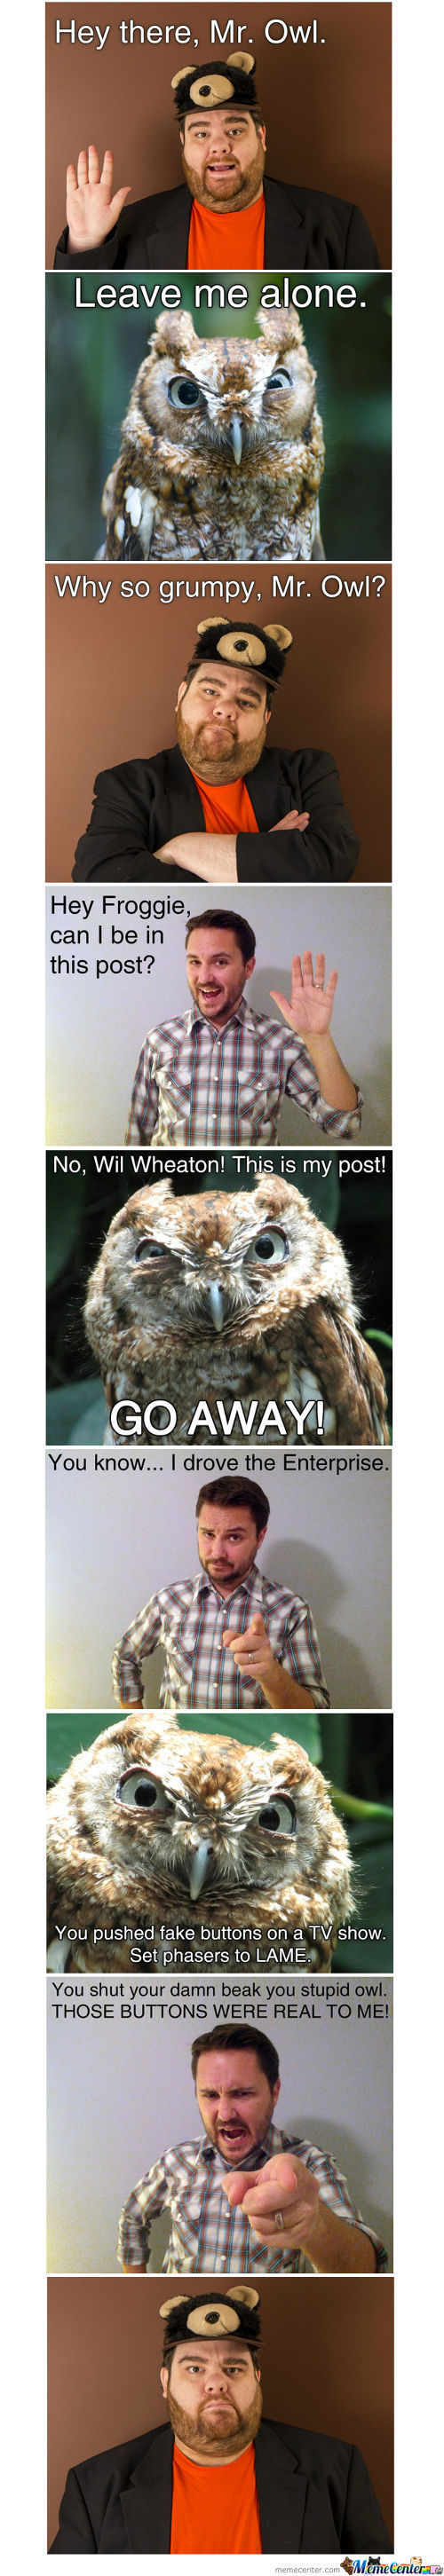 Will Wheaton & The Grumpy Owl